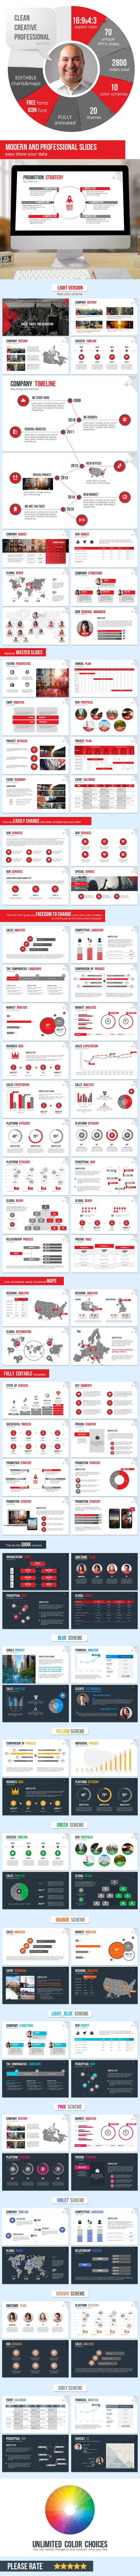 GraphicRiver Sales PowerPoint Presentation Template 9693077